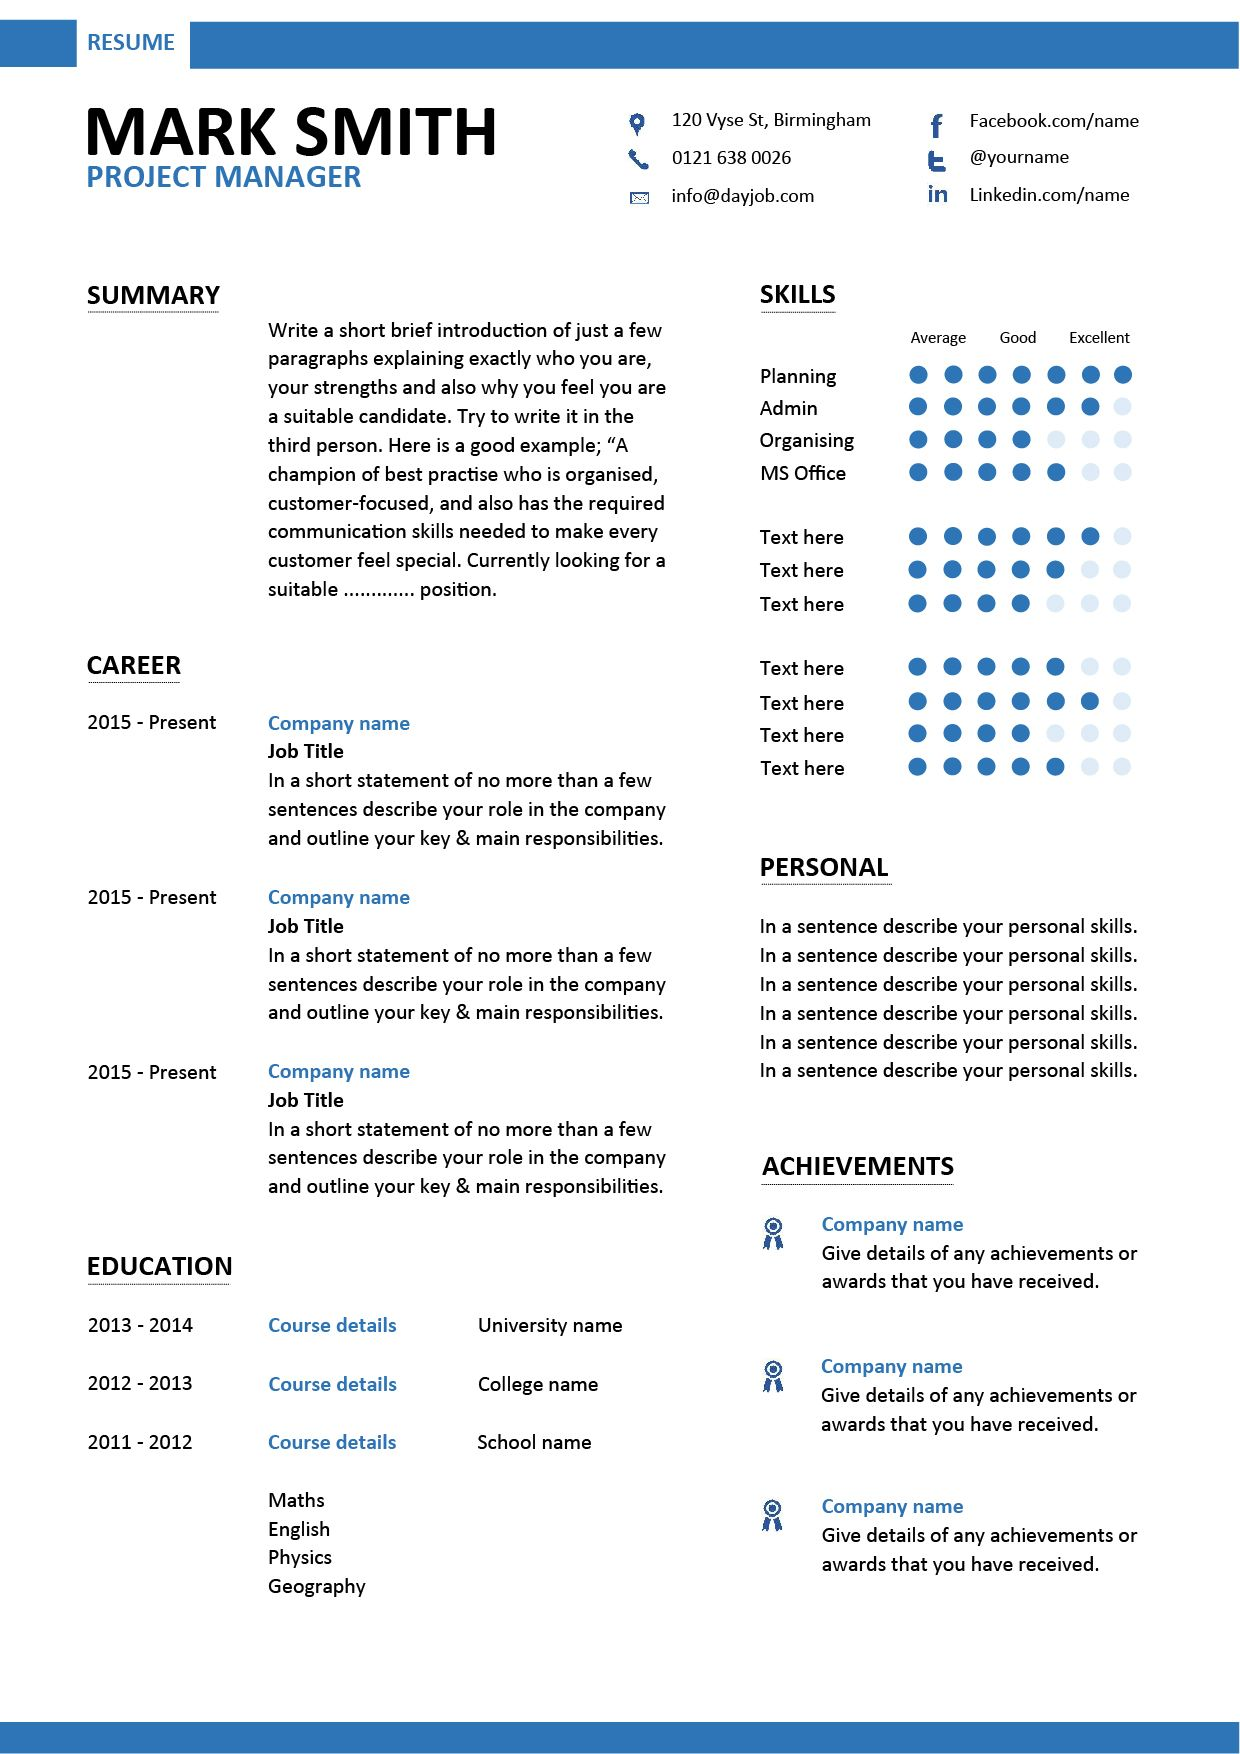 A Project manager resume that has a modern design and